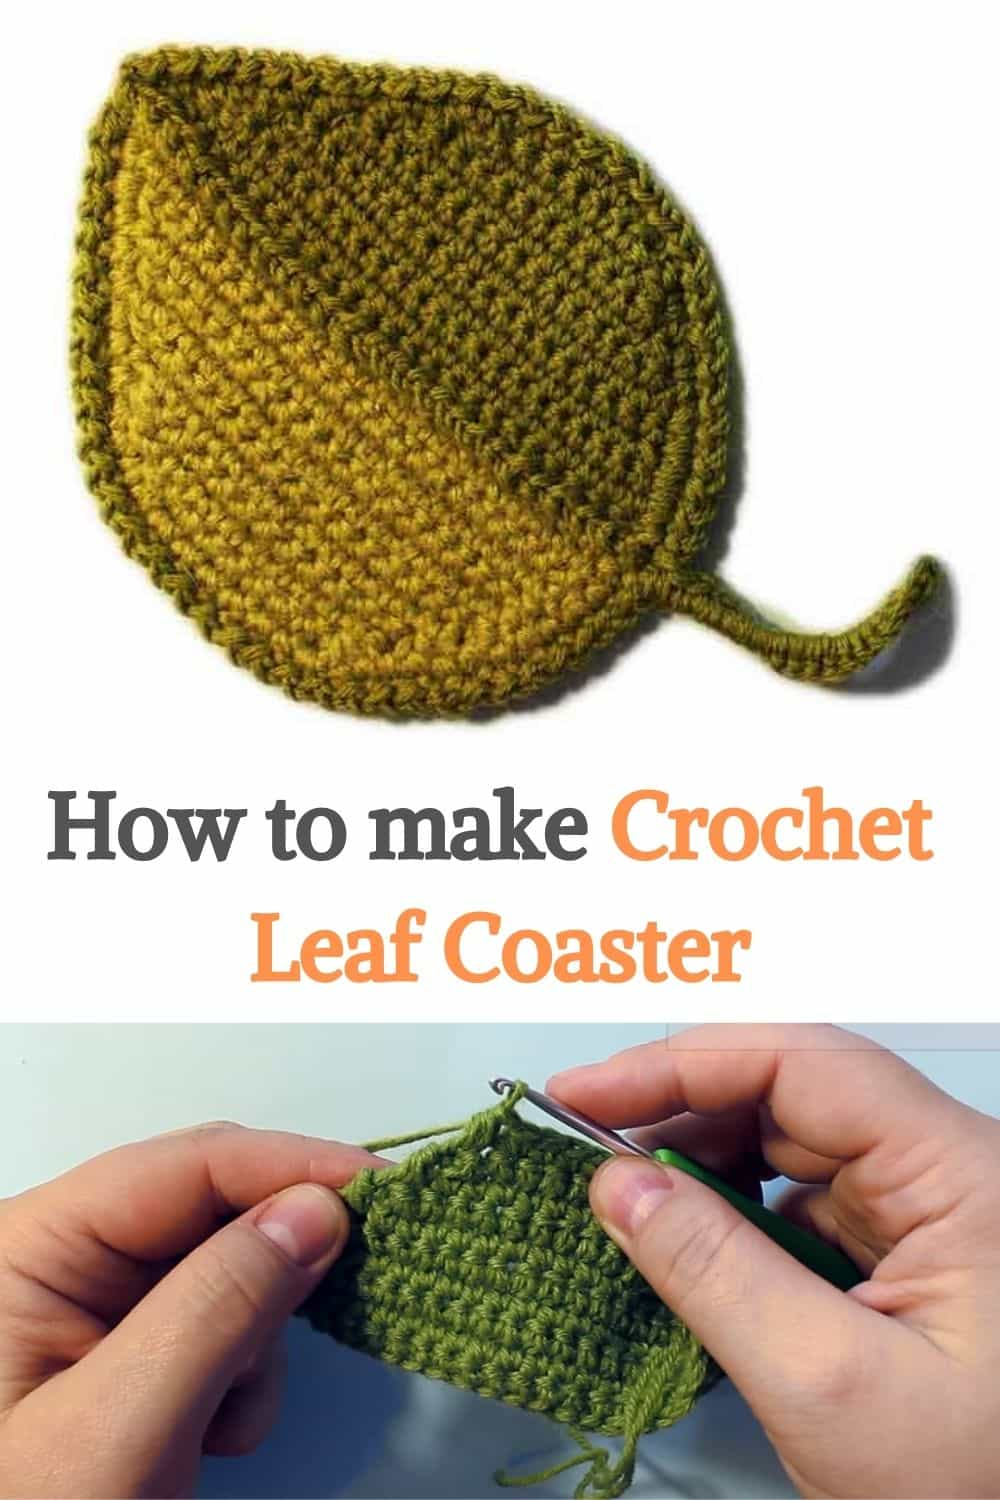 Crochet Leaf Coaster